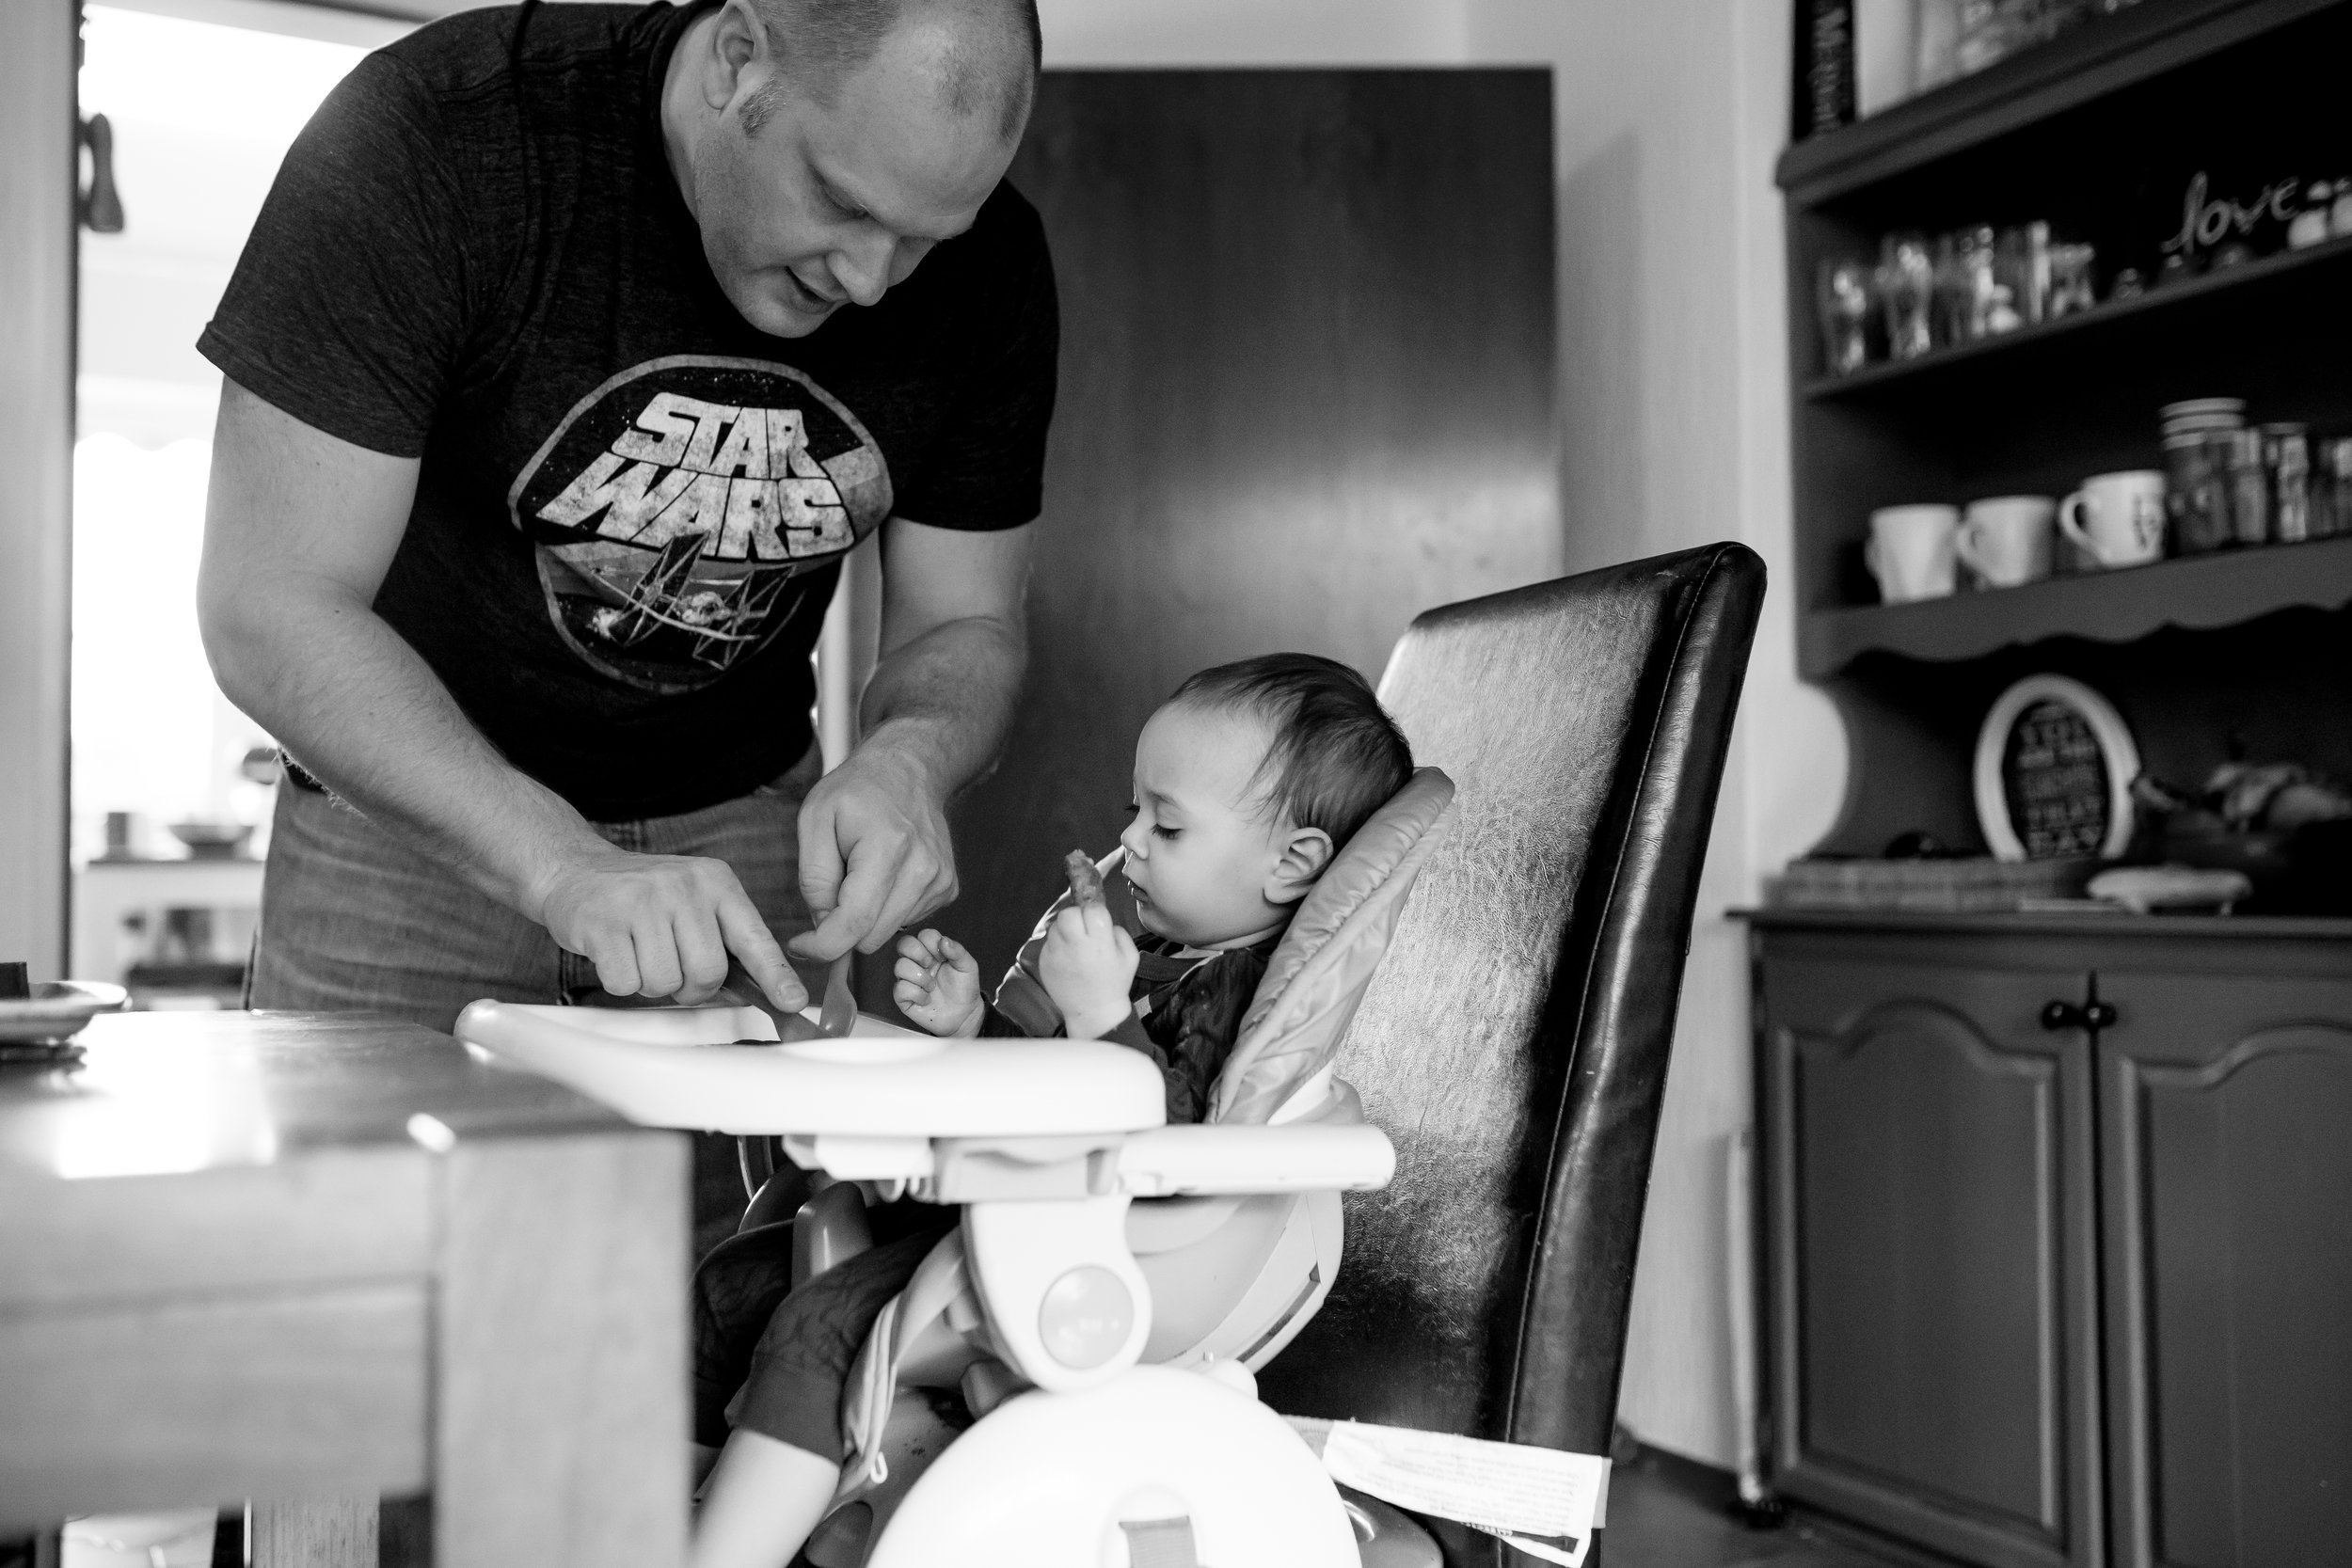 Dad cuts food for son in high chair